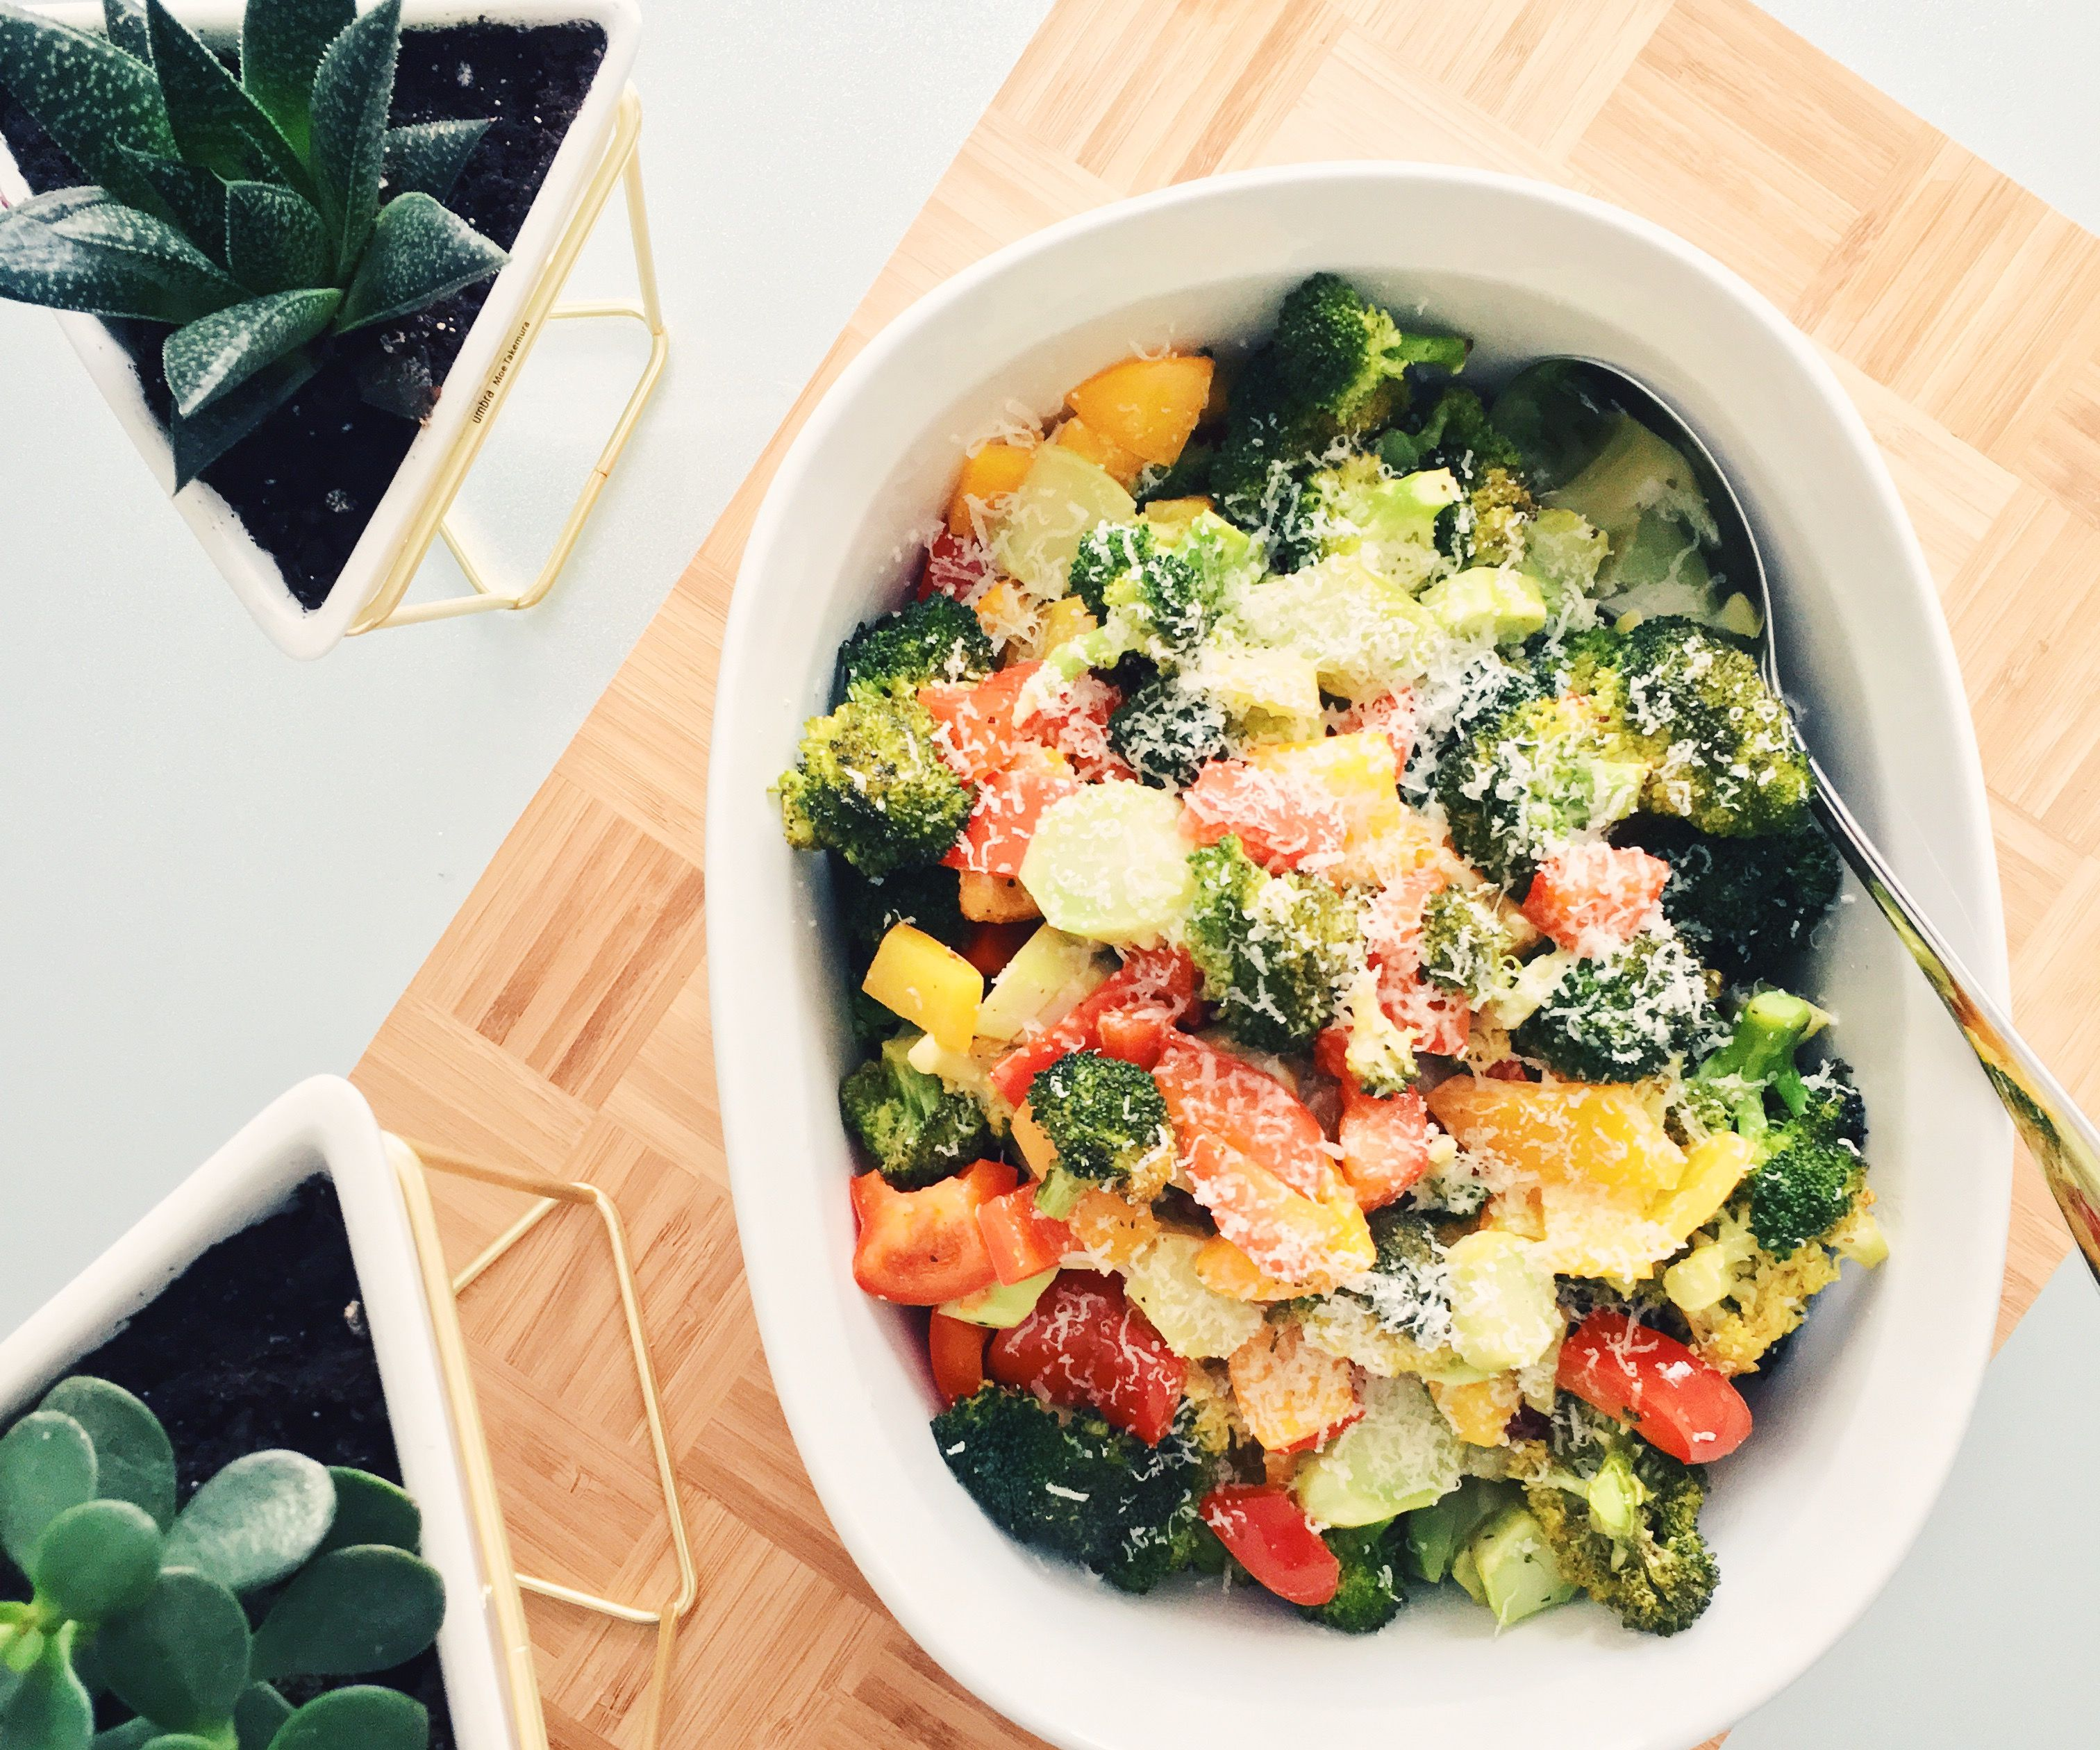 RECIPE | ROASTED BROCCOLI & PEPPERS WITH PARMESAN